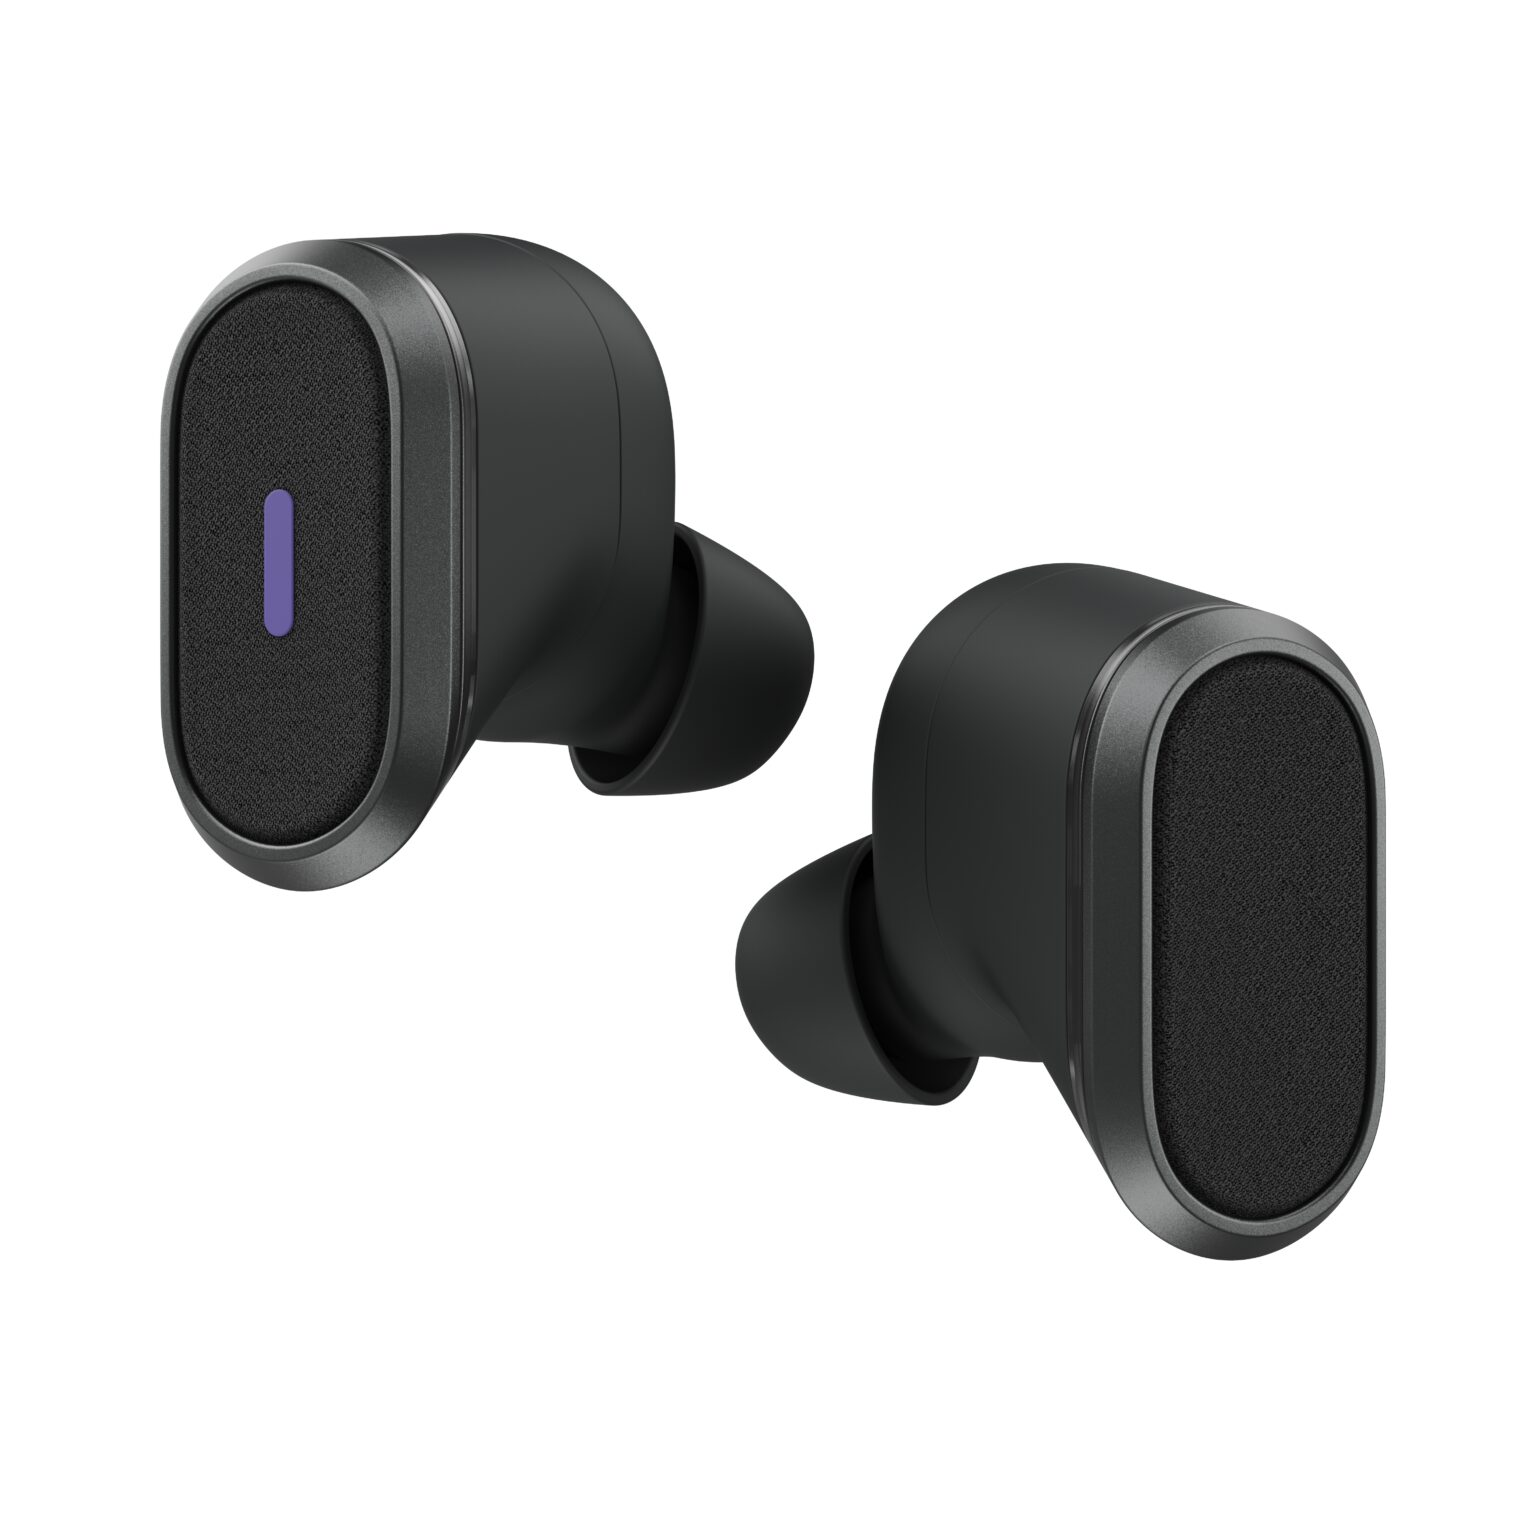 Aimed at business users, the Logitech Zone True Wireless Earbuds should be out in fall 2021.